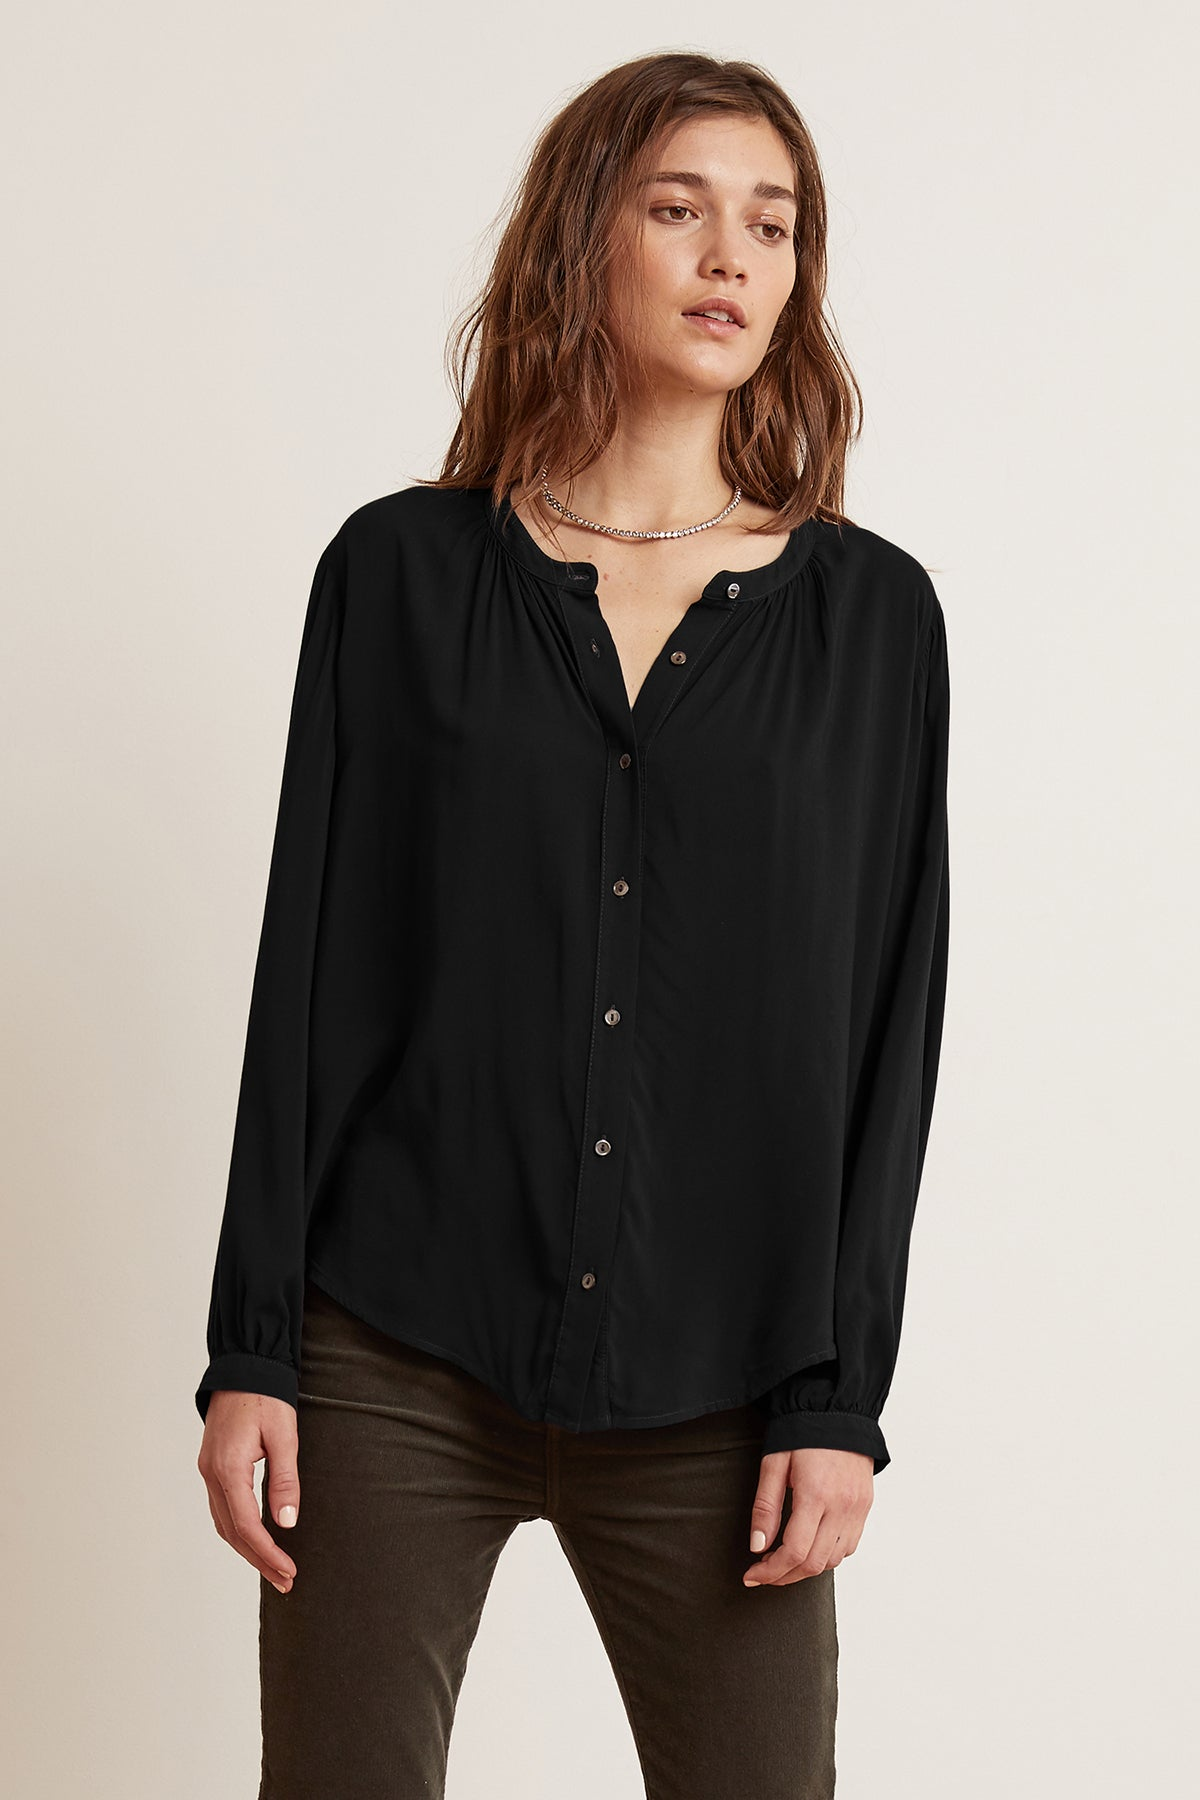 SERAFINA BUTTON-UP BLOUSE